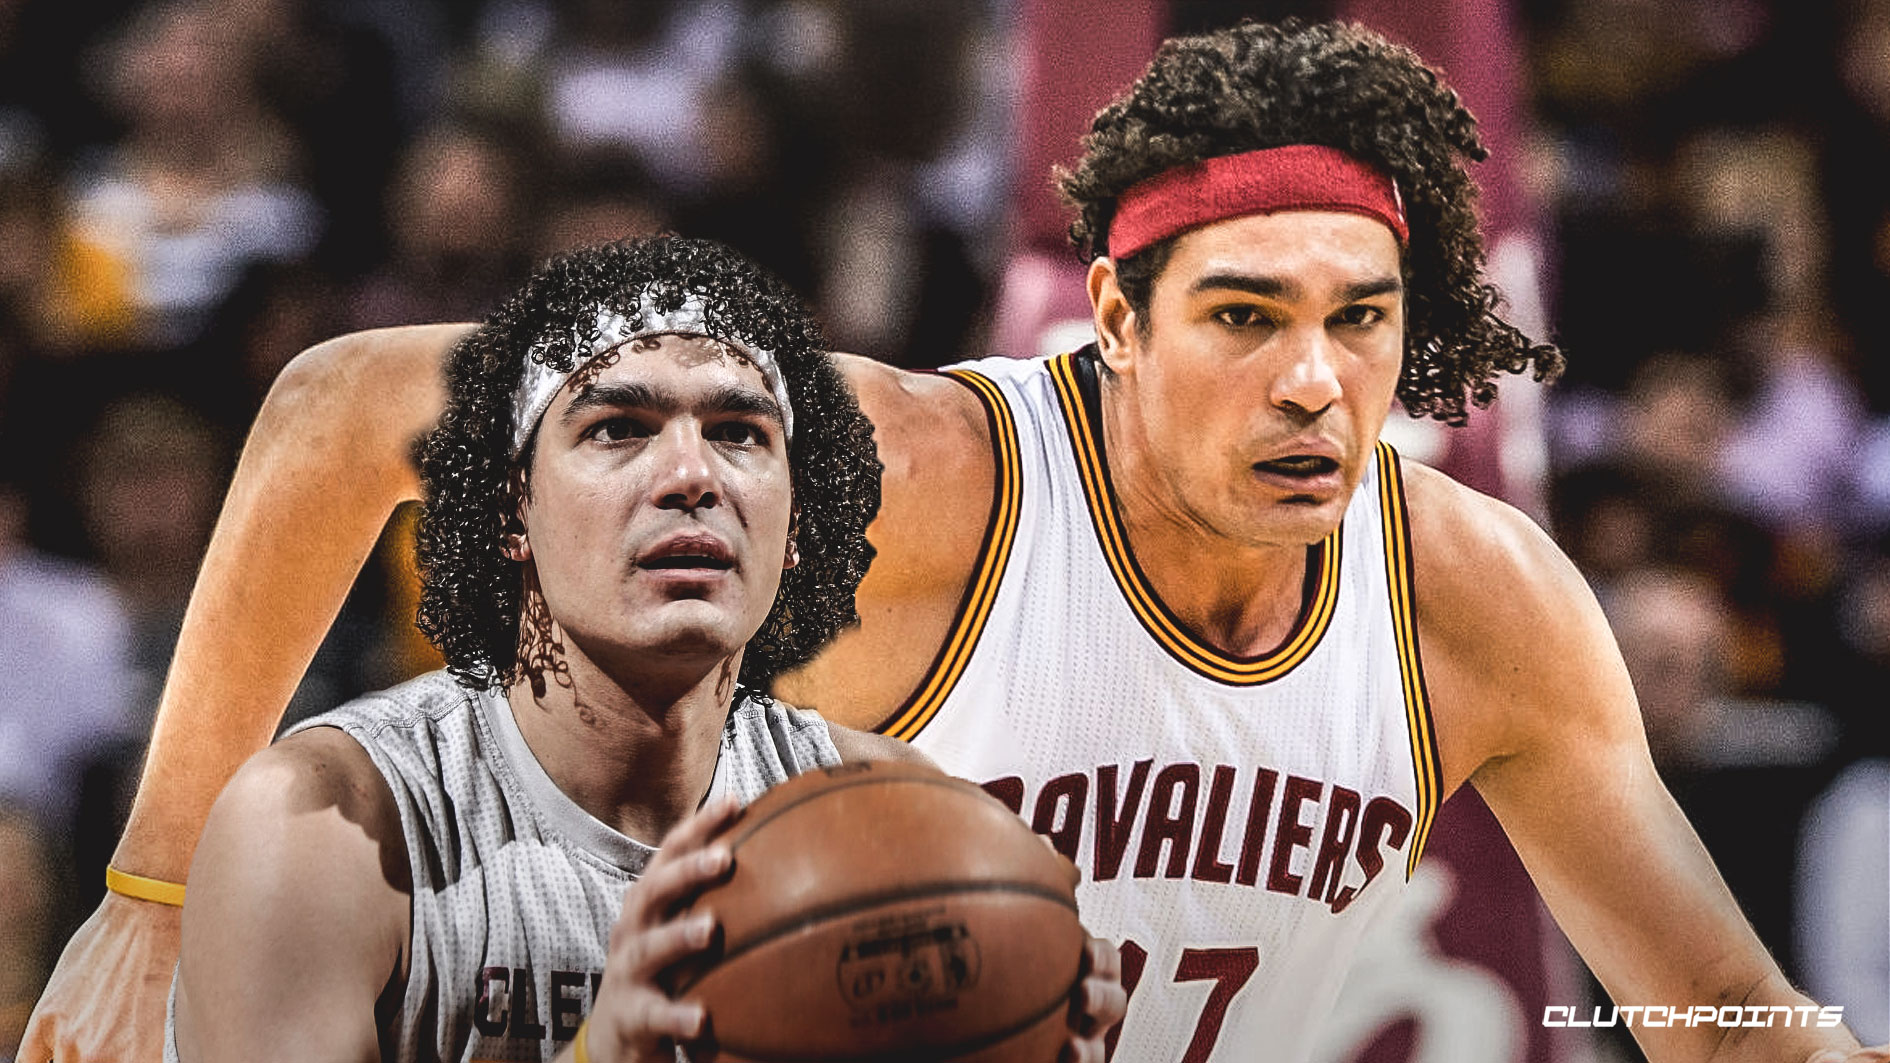 Anderson Varejao wouldn't mind returning to Cavs